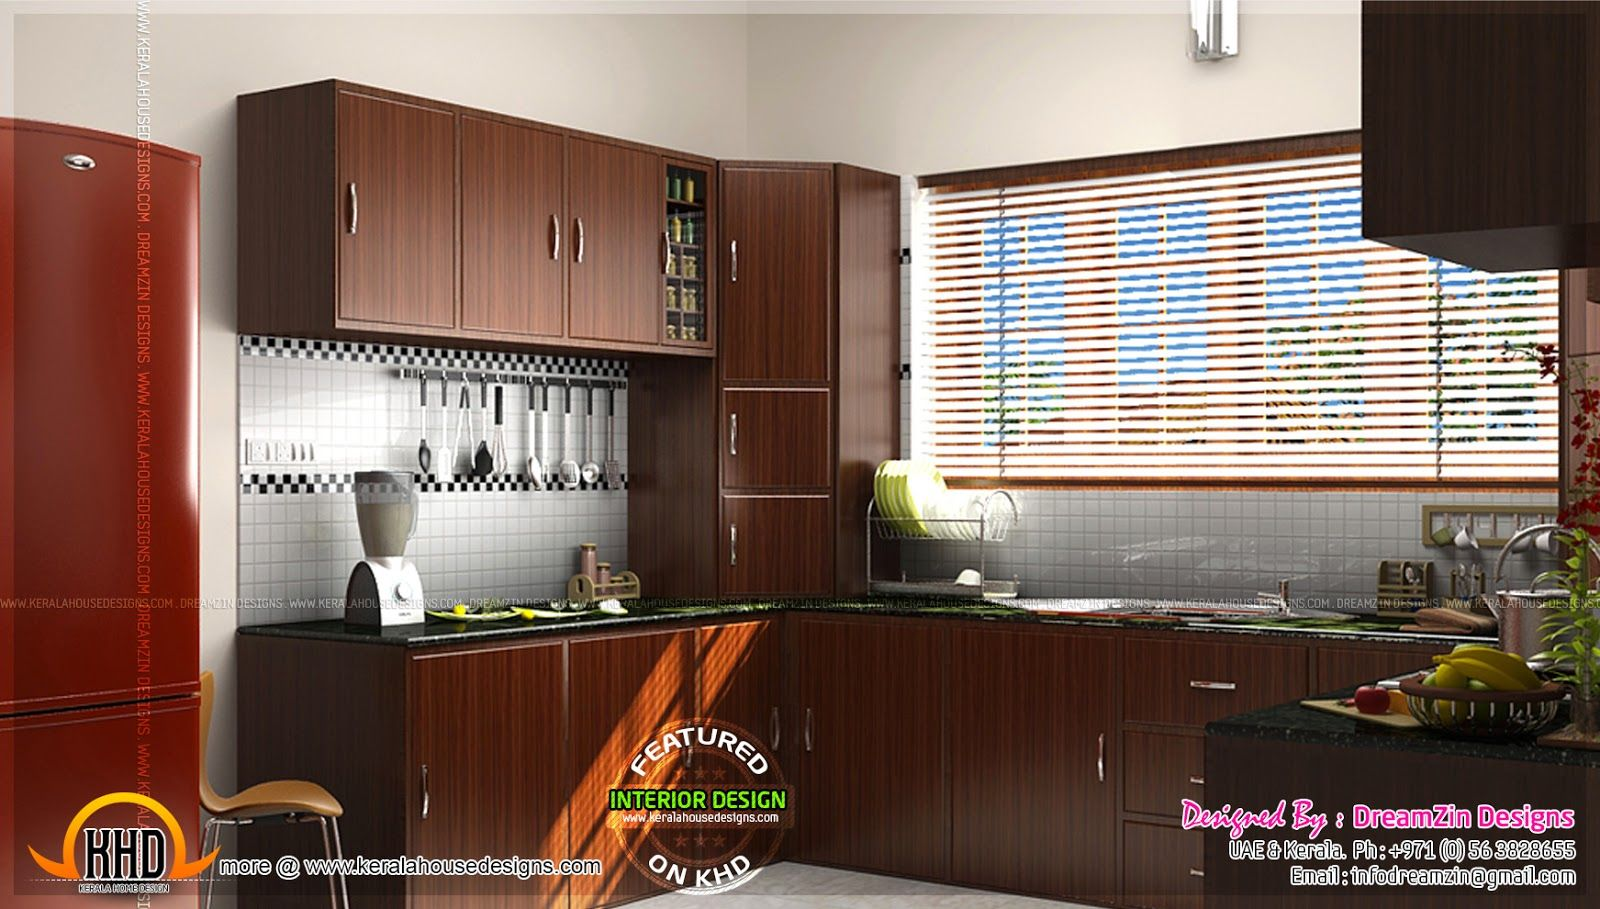 kerala kitchen interior design modular kitchen kerala kerala kitchen